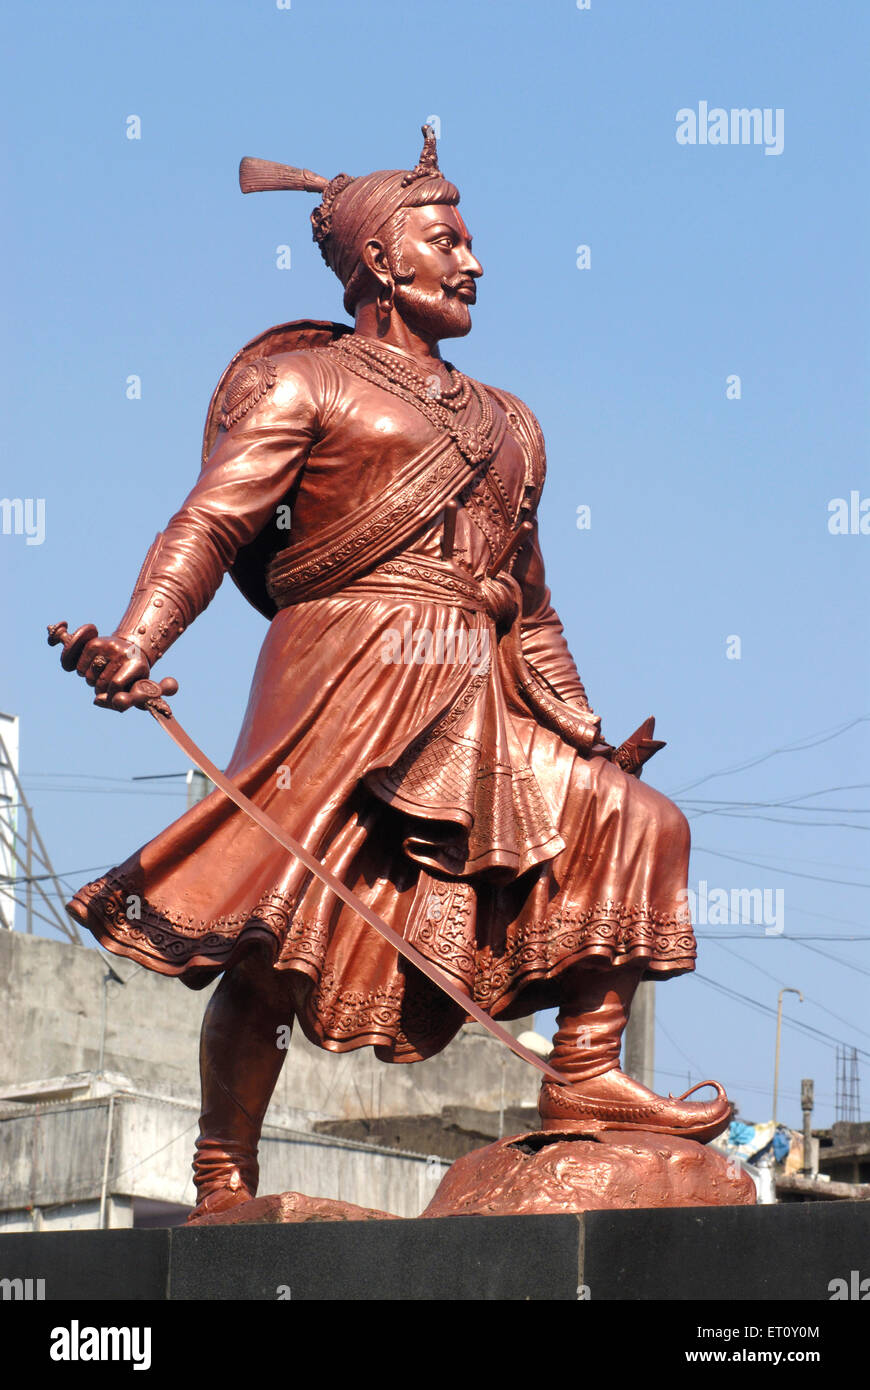 bronze statue sambhaji maharaj holding sword son maratha king stock photo alamy